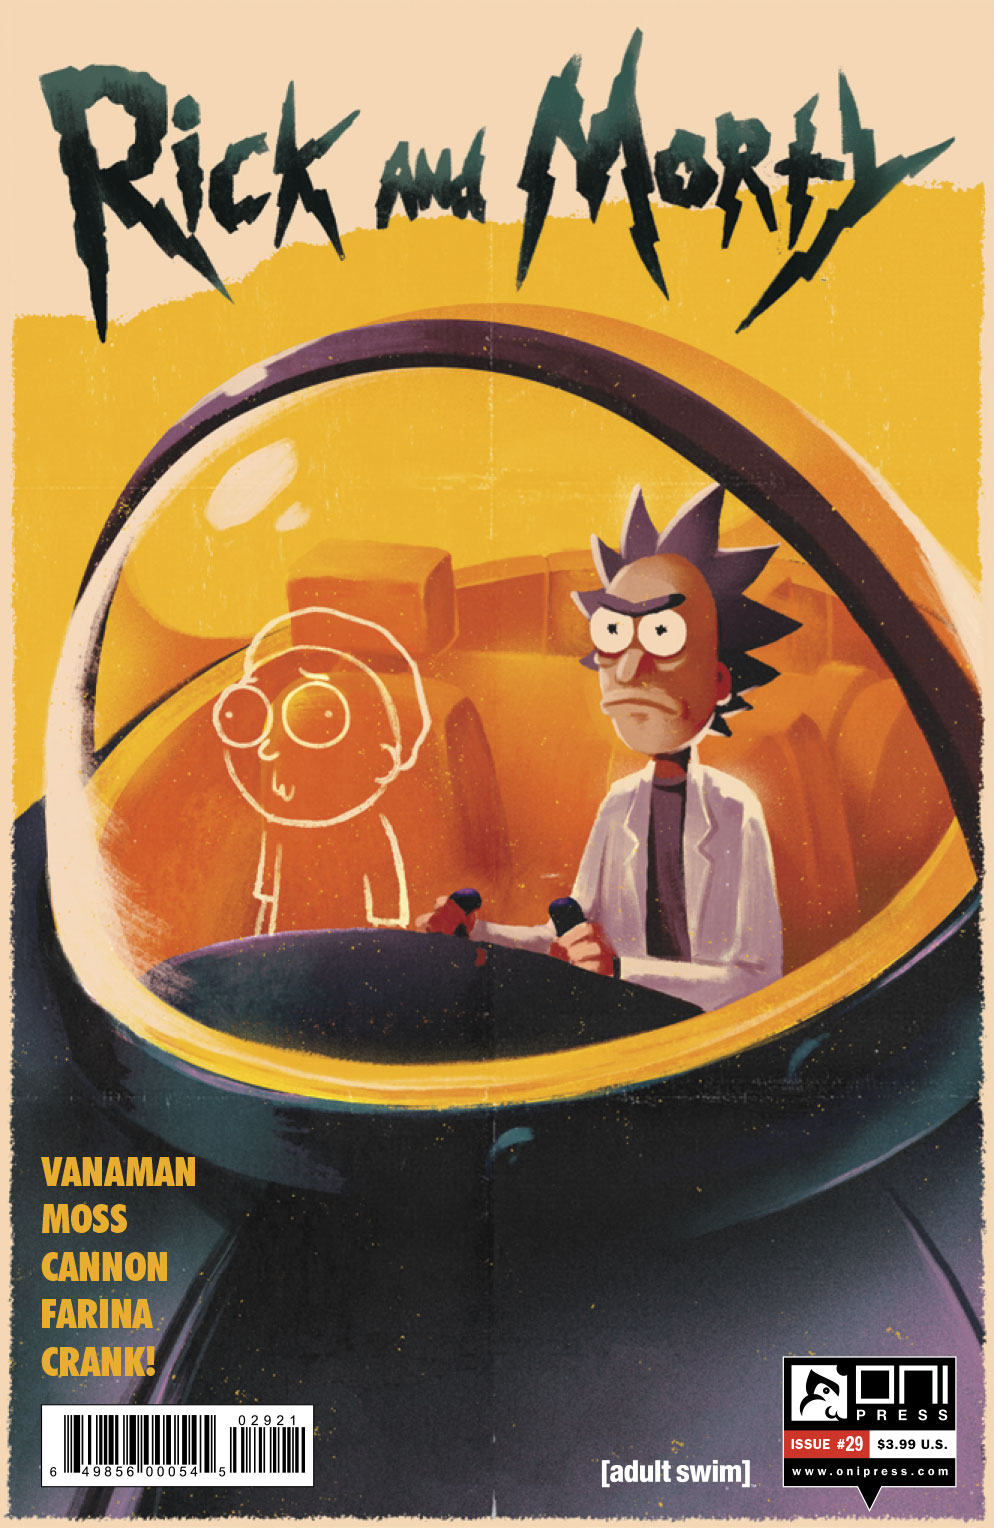 Rick and Morty #29 Review